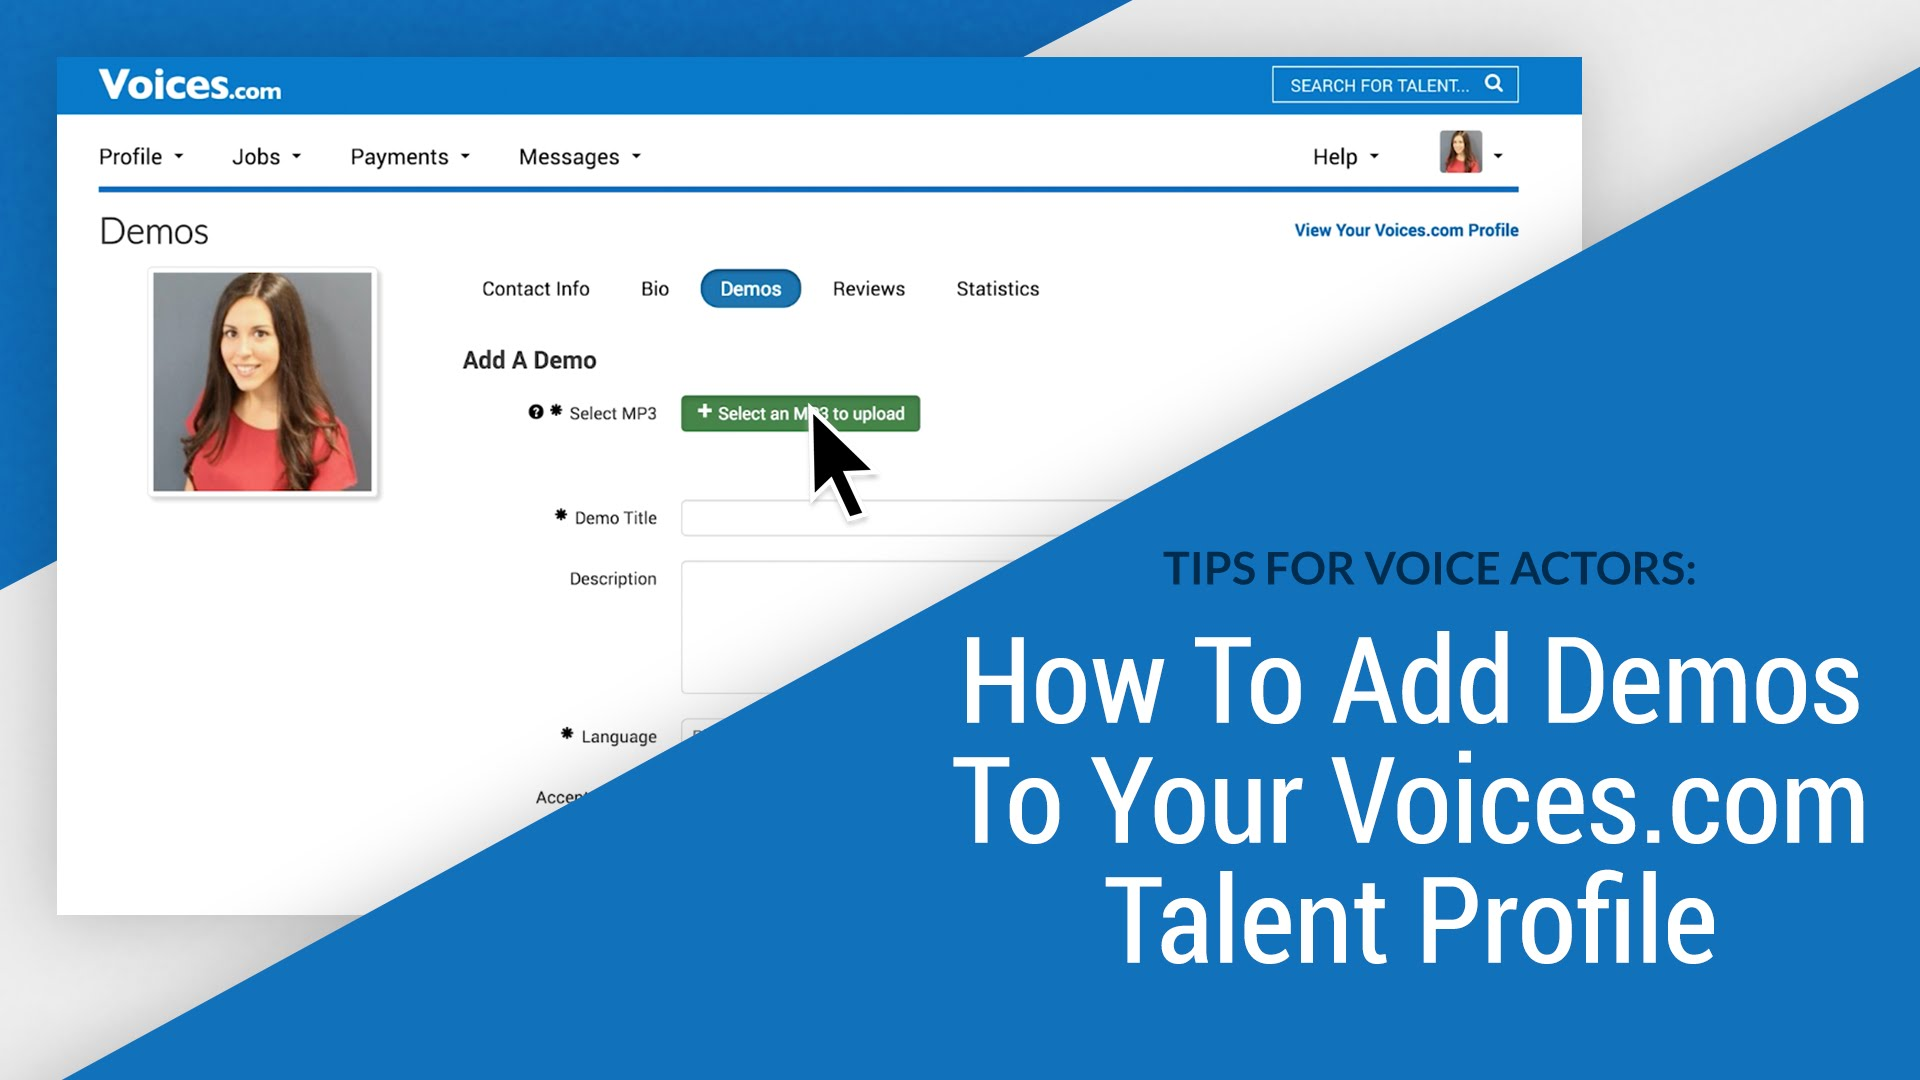 Tips for Voice Actors